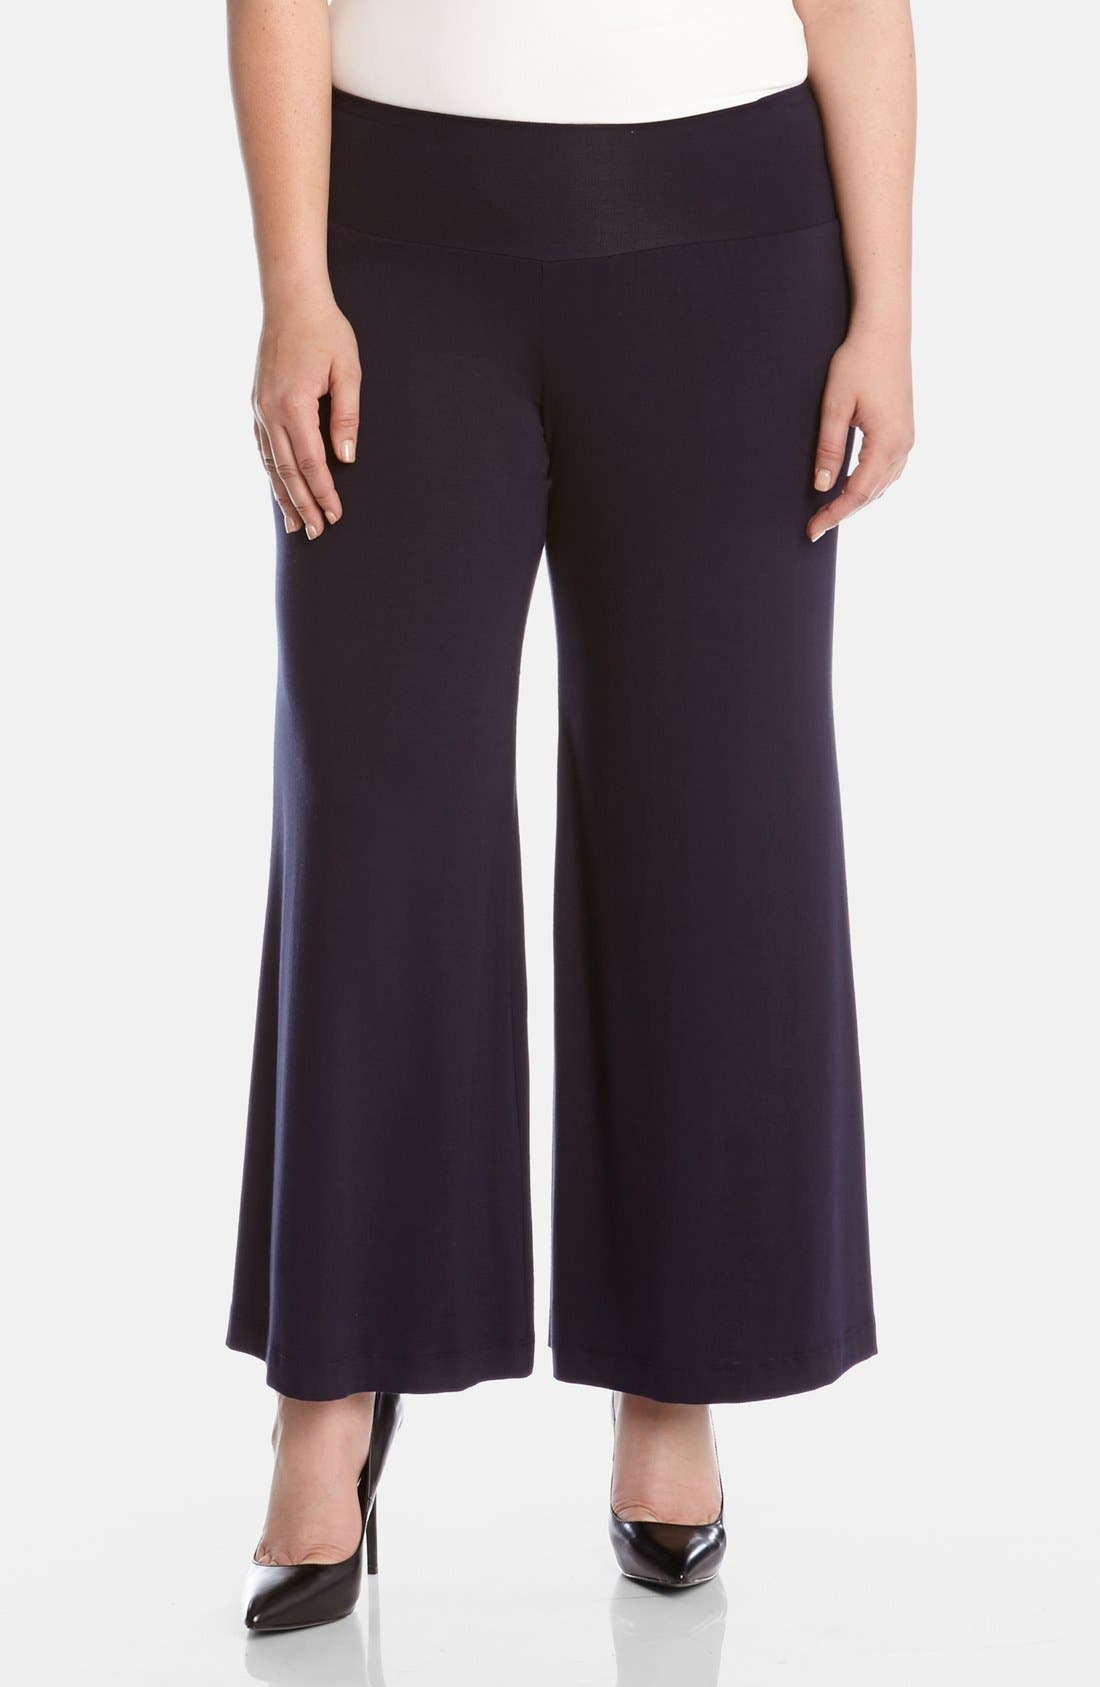 Alternate Image 1 Selected - Karen Kane Knit Palazzo Pants (Plus)